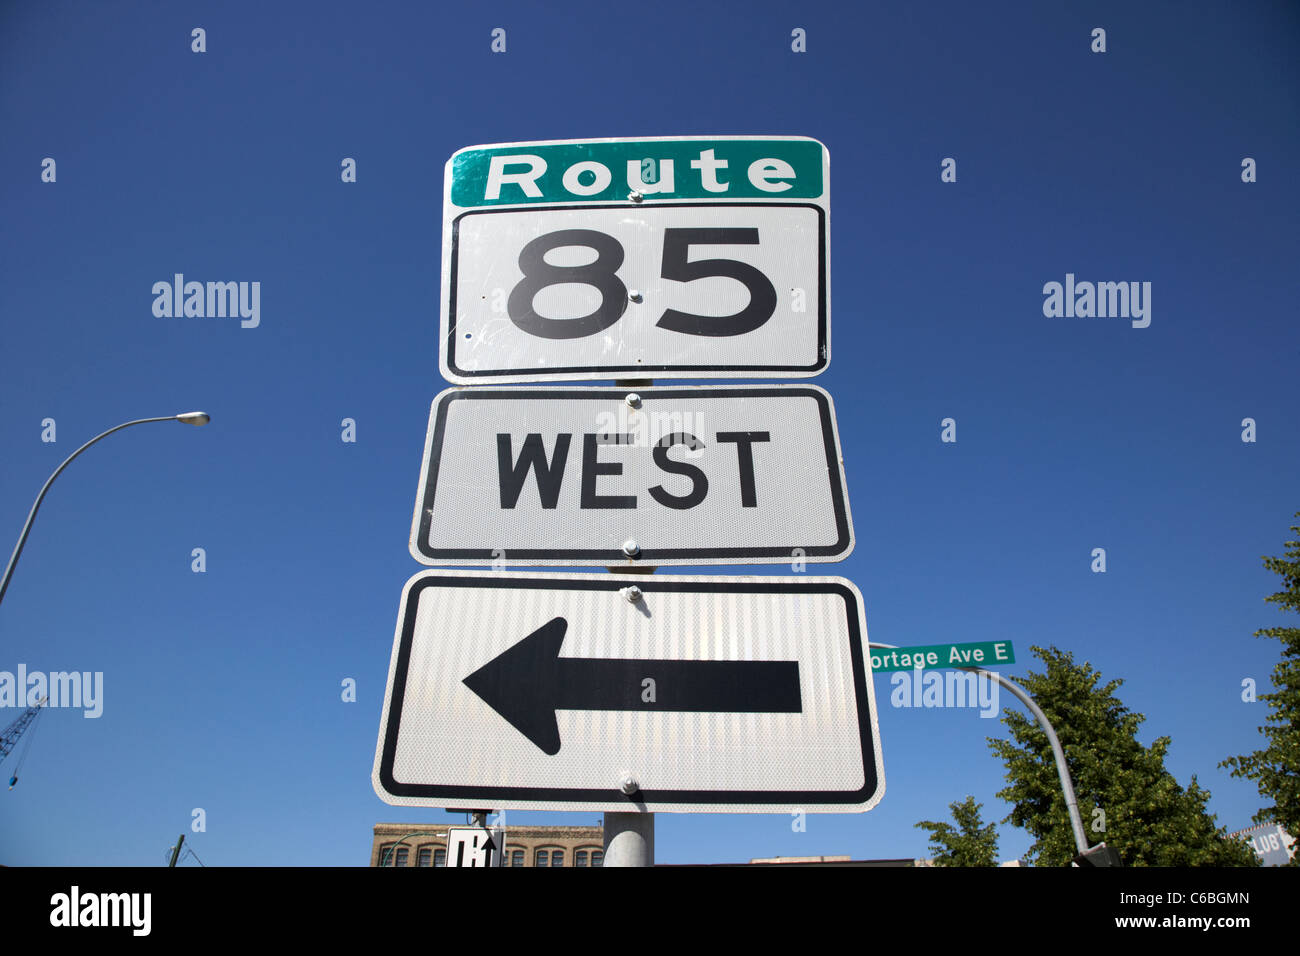 route 85 west arrow direction sign in downtown winnipeg manitoba canada - Stock Image